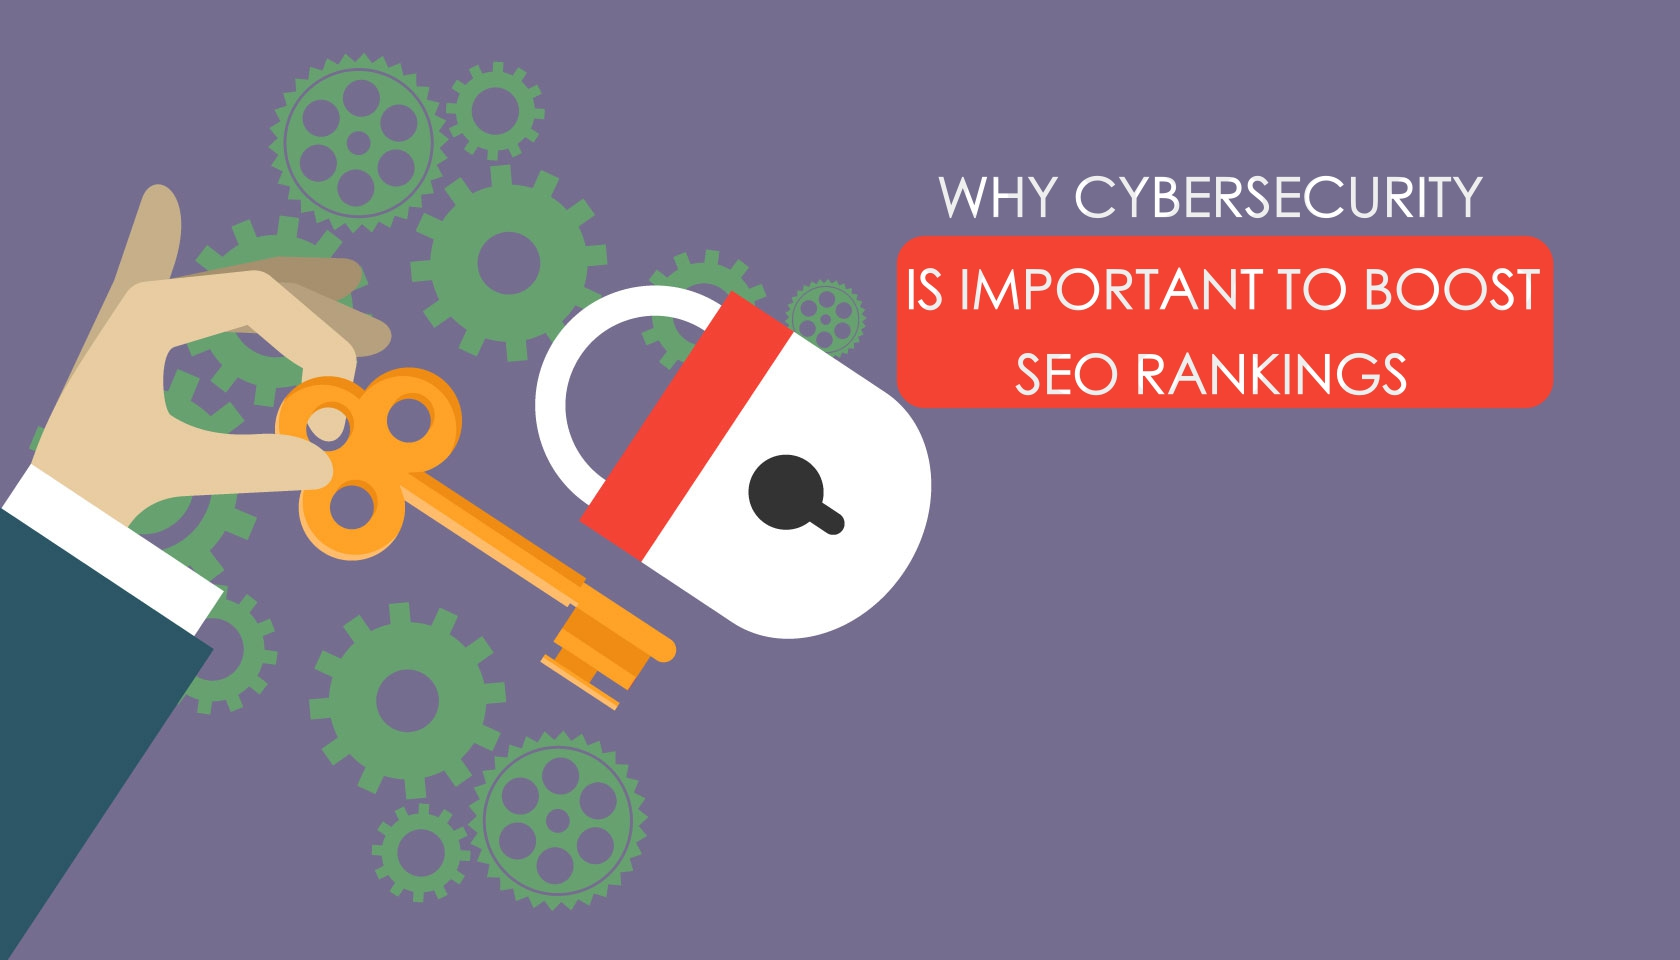 why-cybersecurity-important-to-boost-seo-ranking